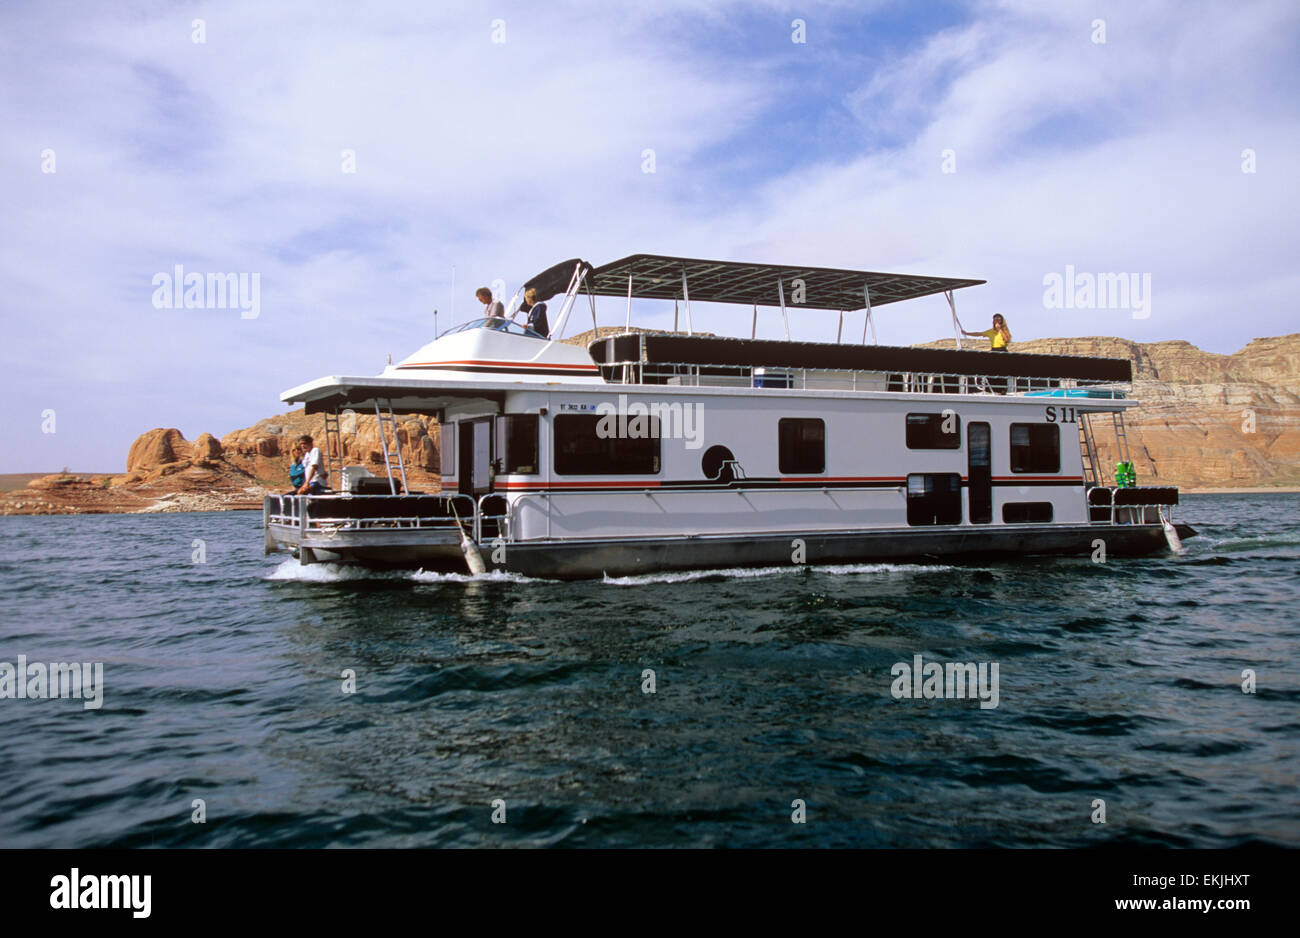 Rental Houseboats Such As This 59 Admiral Model Can